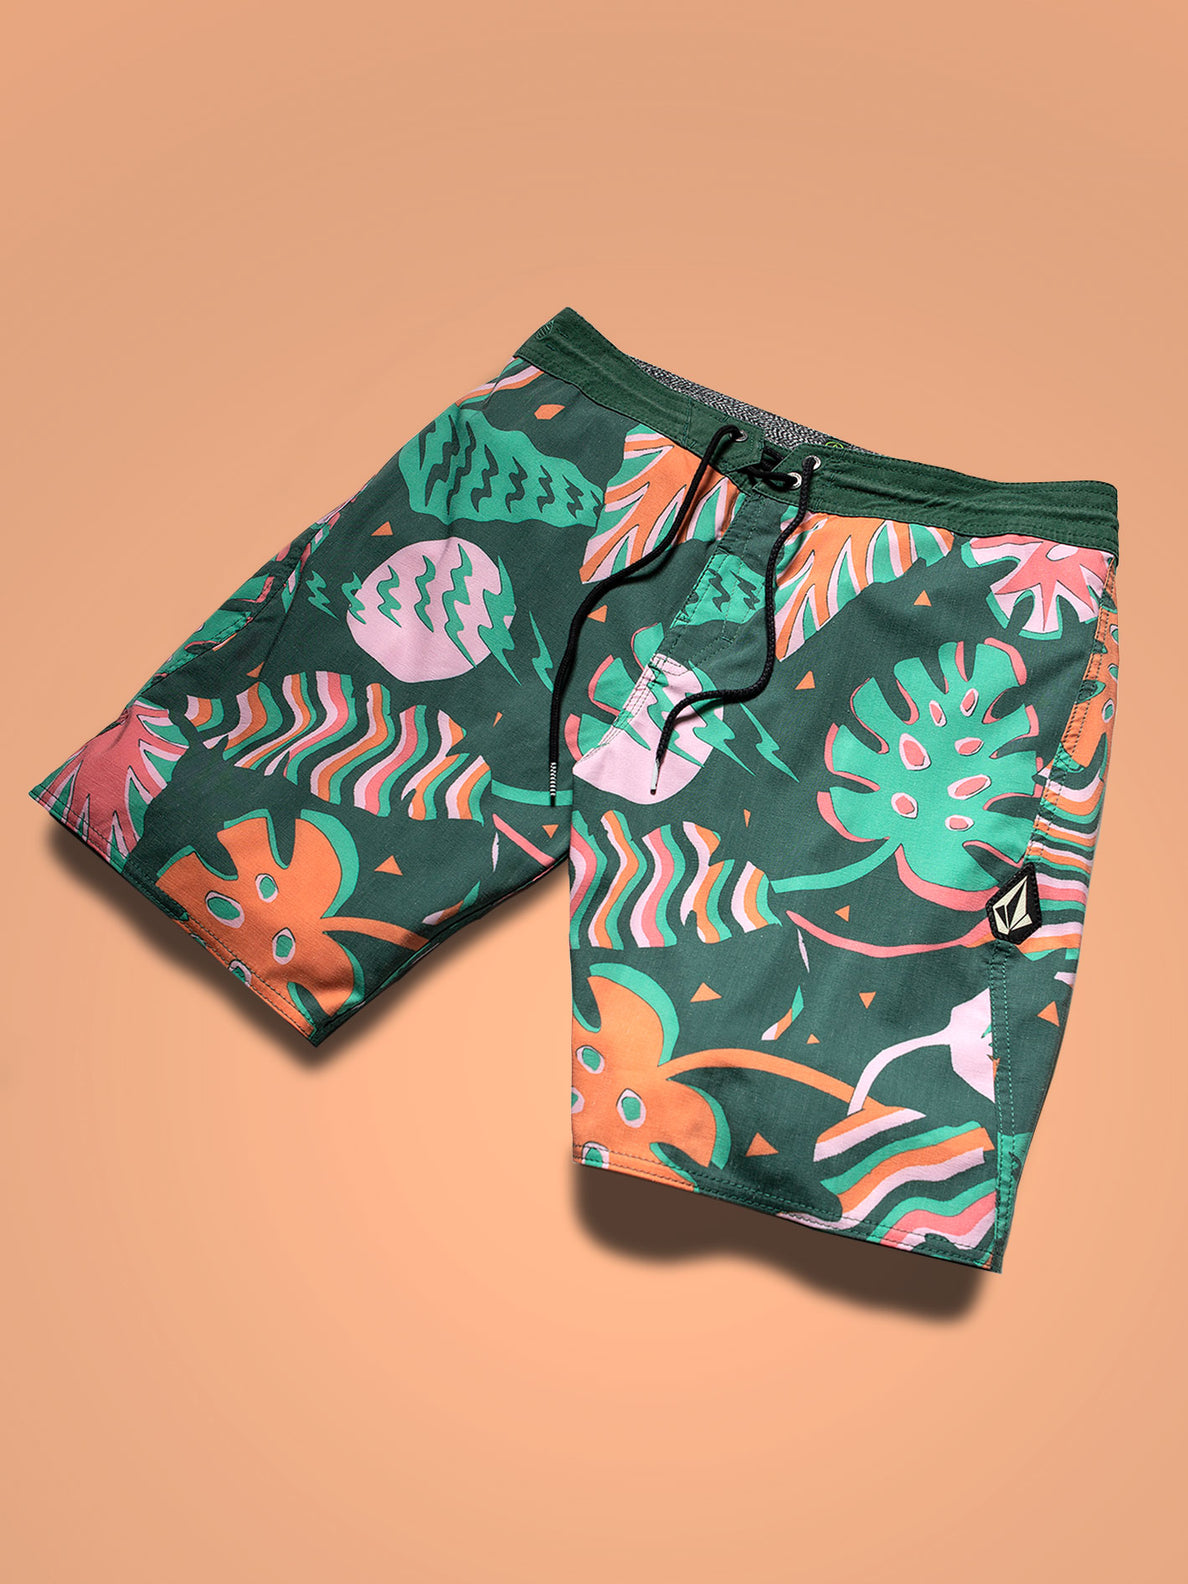 Scrap Stoney Trunks – Volcom